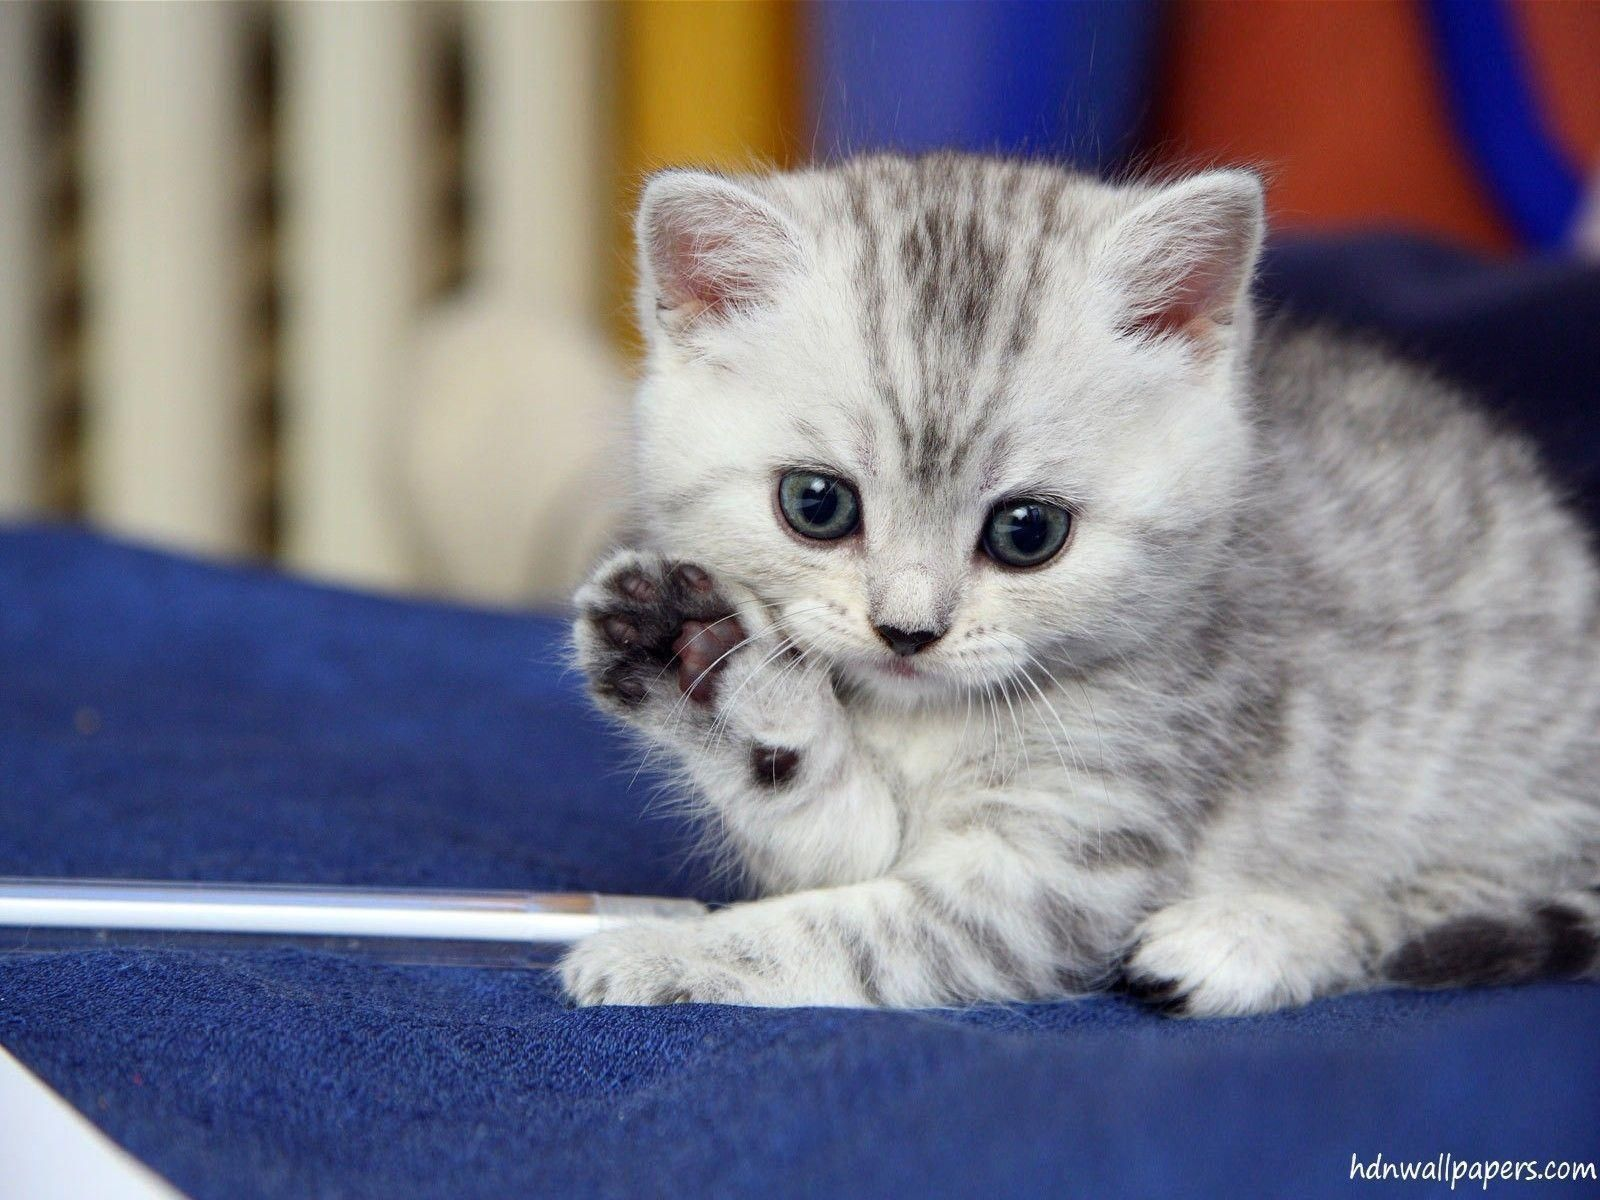 10 Top Kitten Wallpapers Free Download Full Hd 1920 1080 For Pc Background Kittens Cutest Cute Cats And Kittens Cute Cats